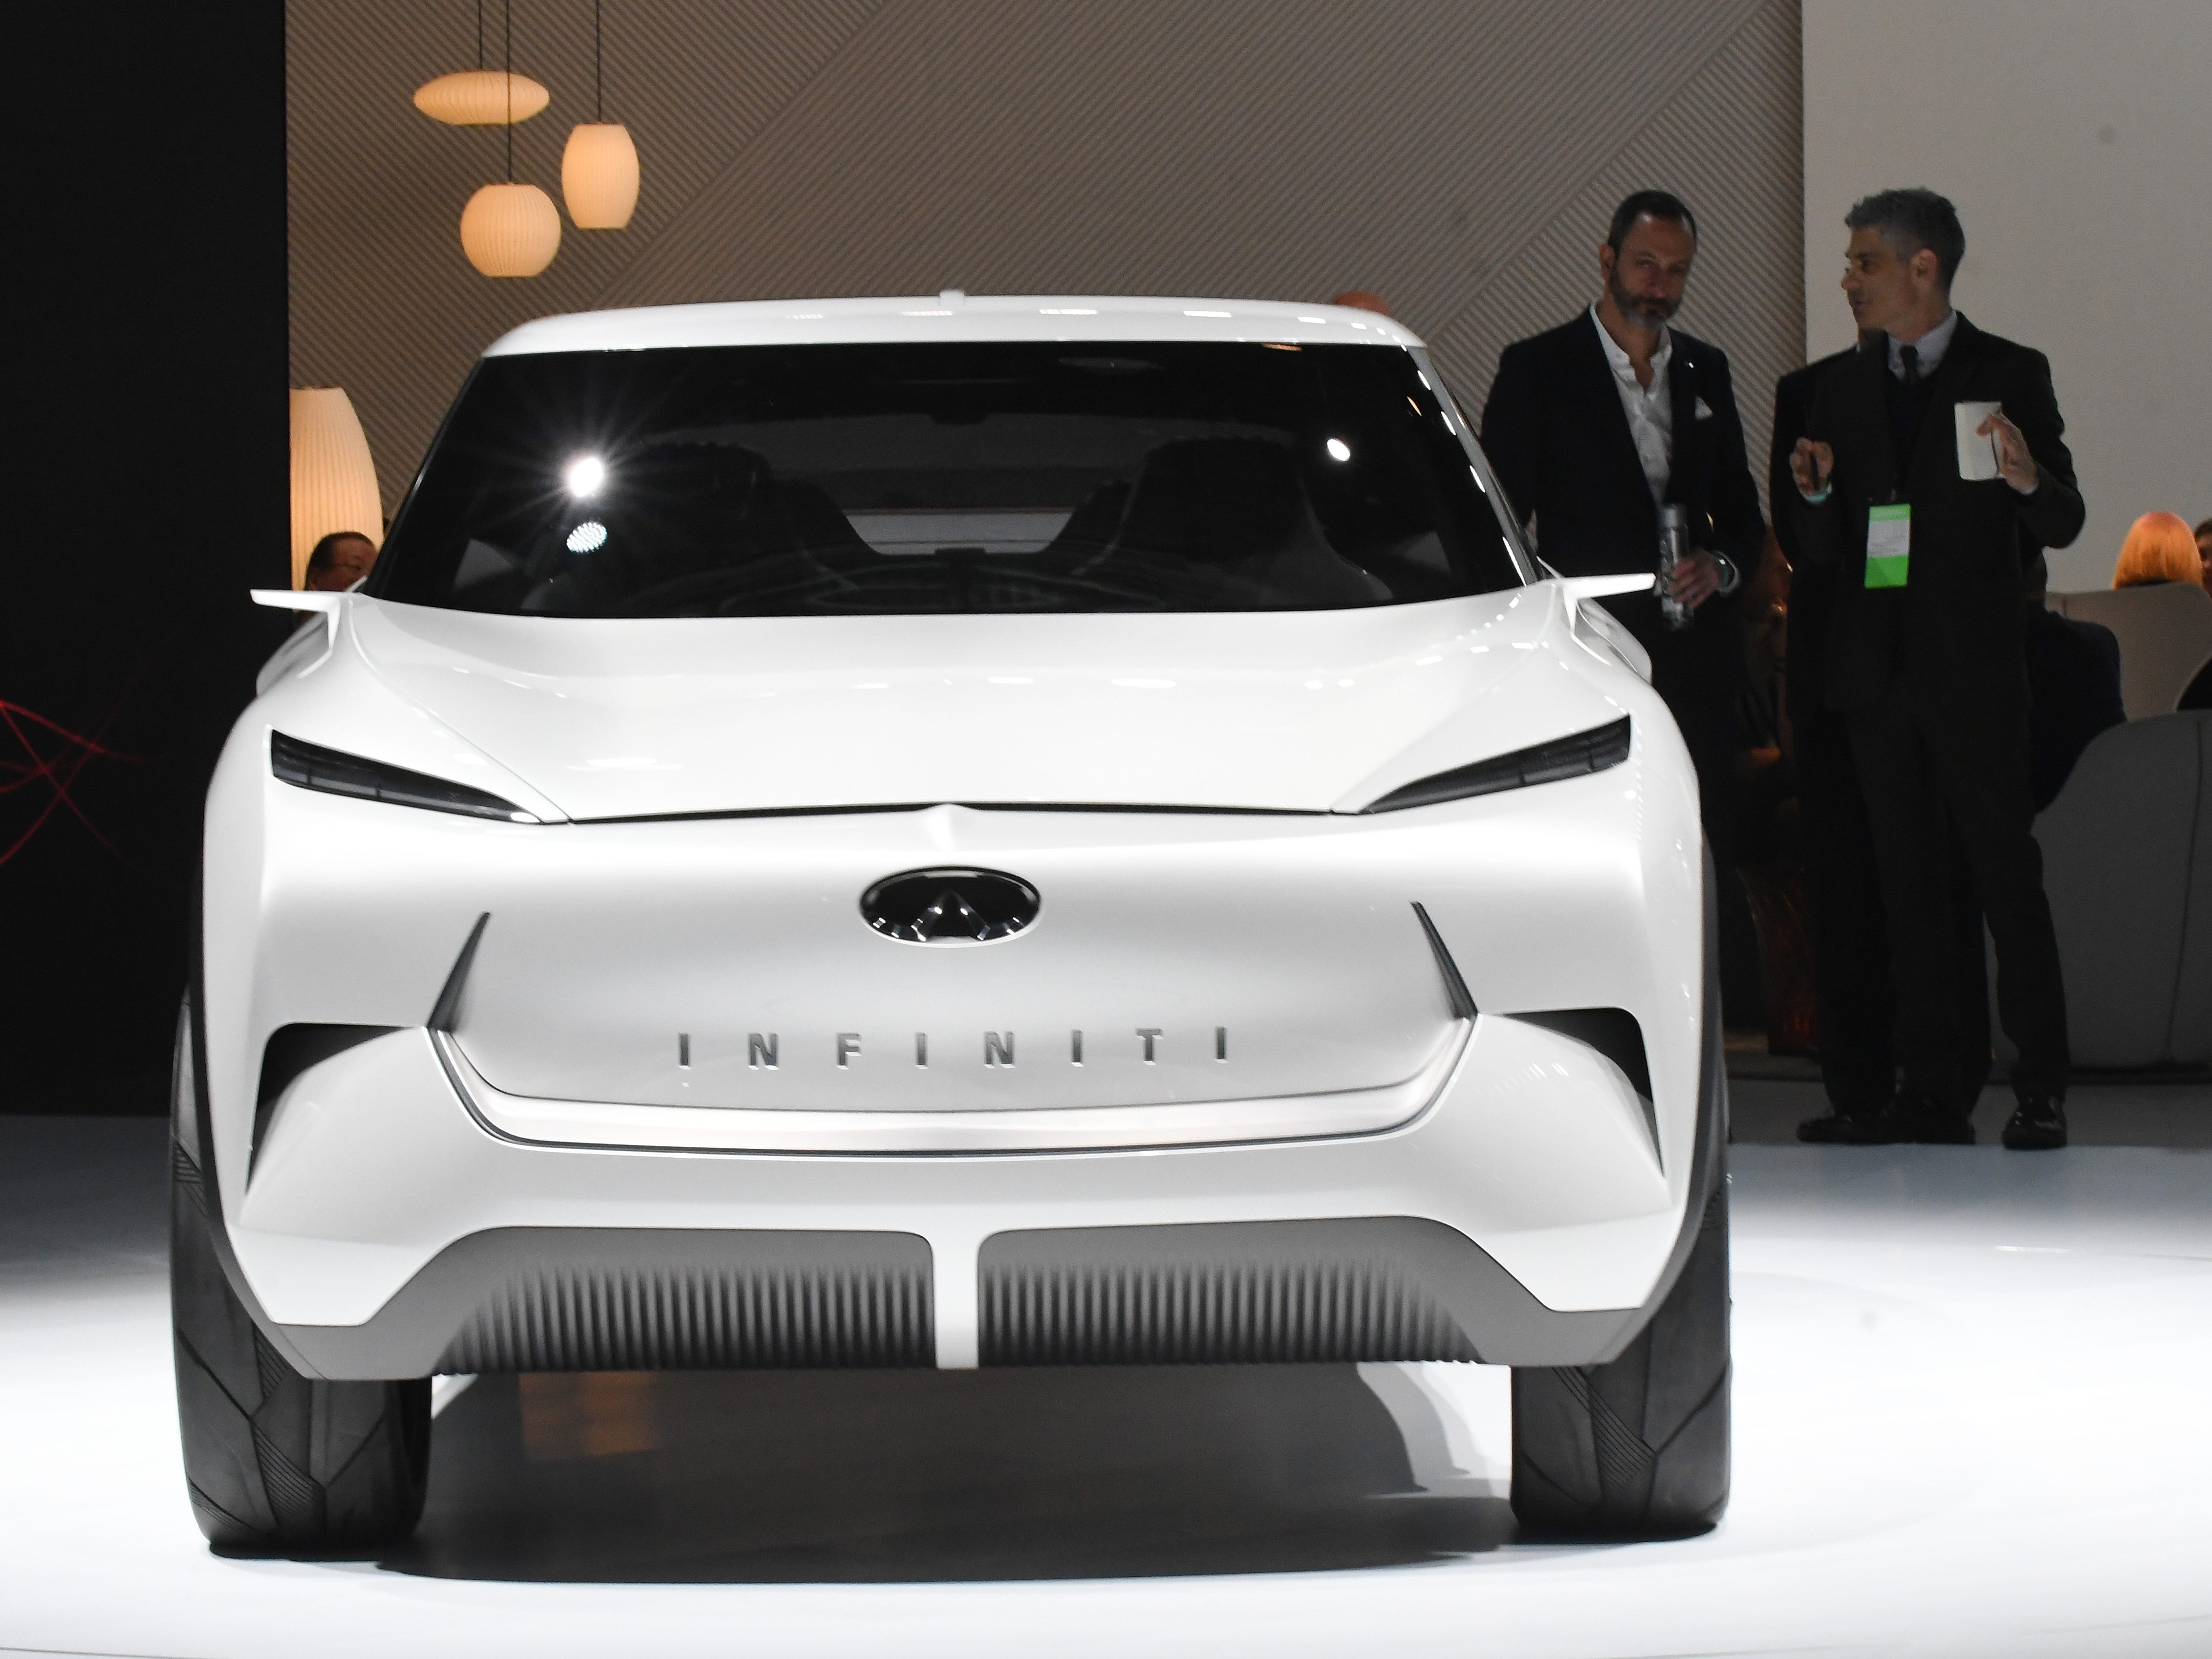 The Infiniti QX Inspiration concept vehicle is finally on display in Detroit after being pushed onto the stage and uncovered.